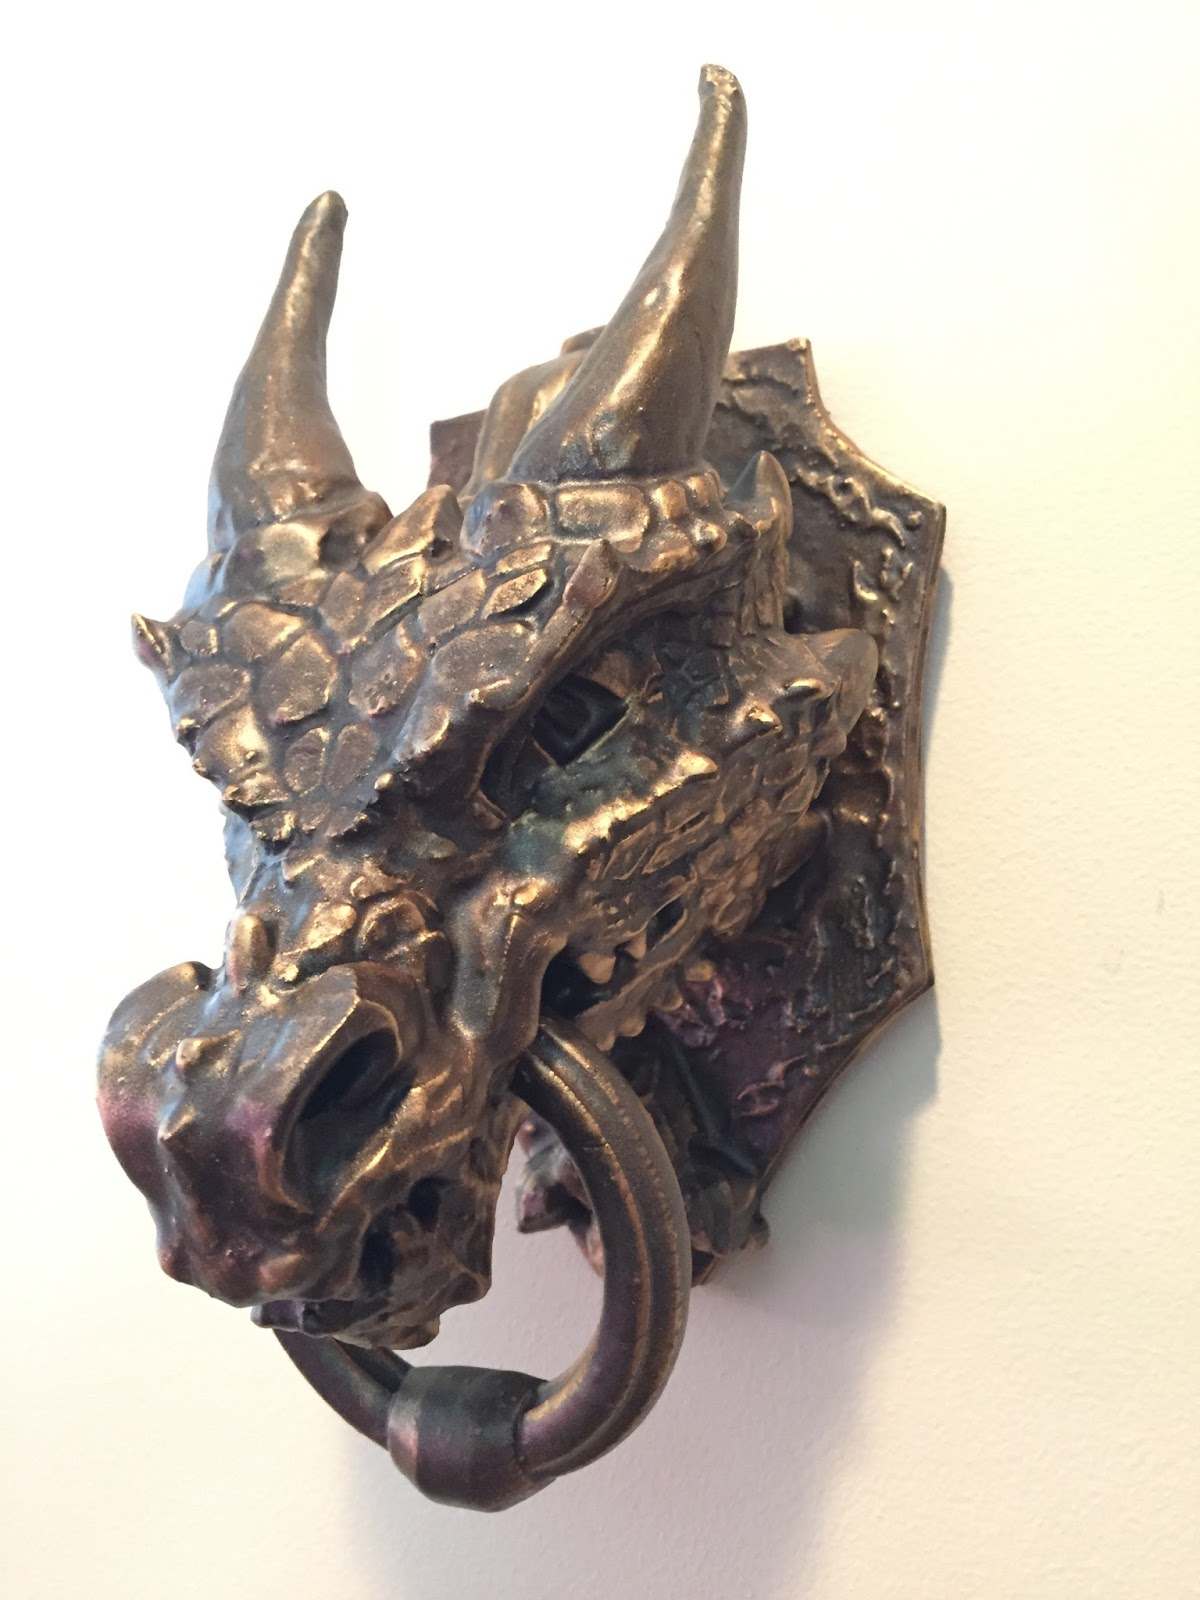 Parts and krafts dragon door knocker 3d print - Dragon door knocker ...